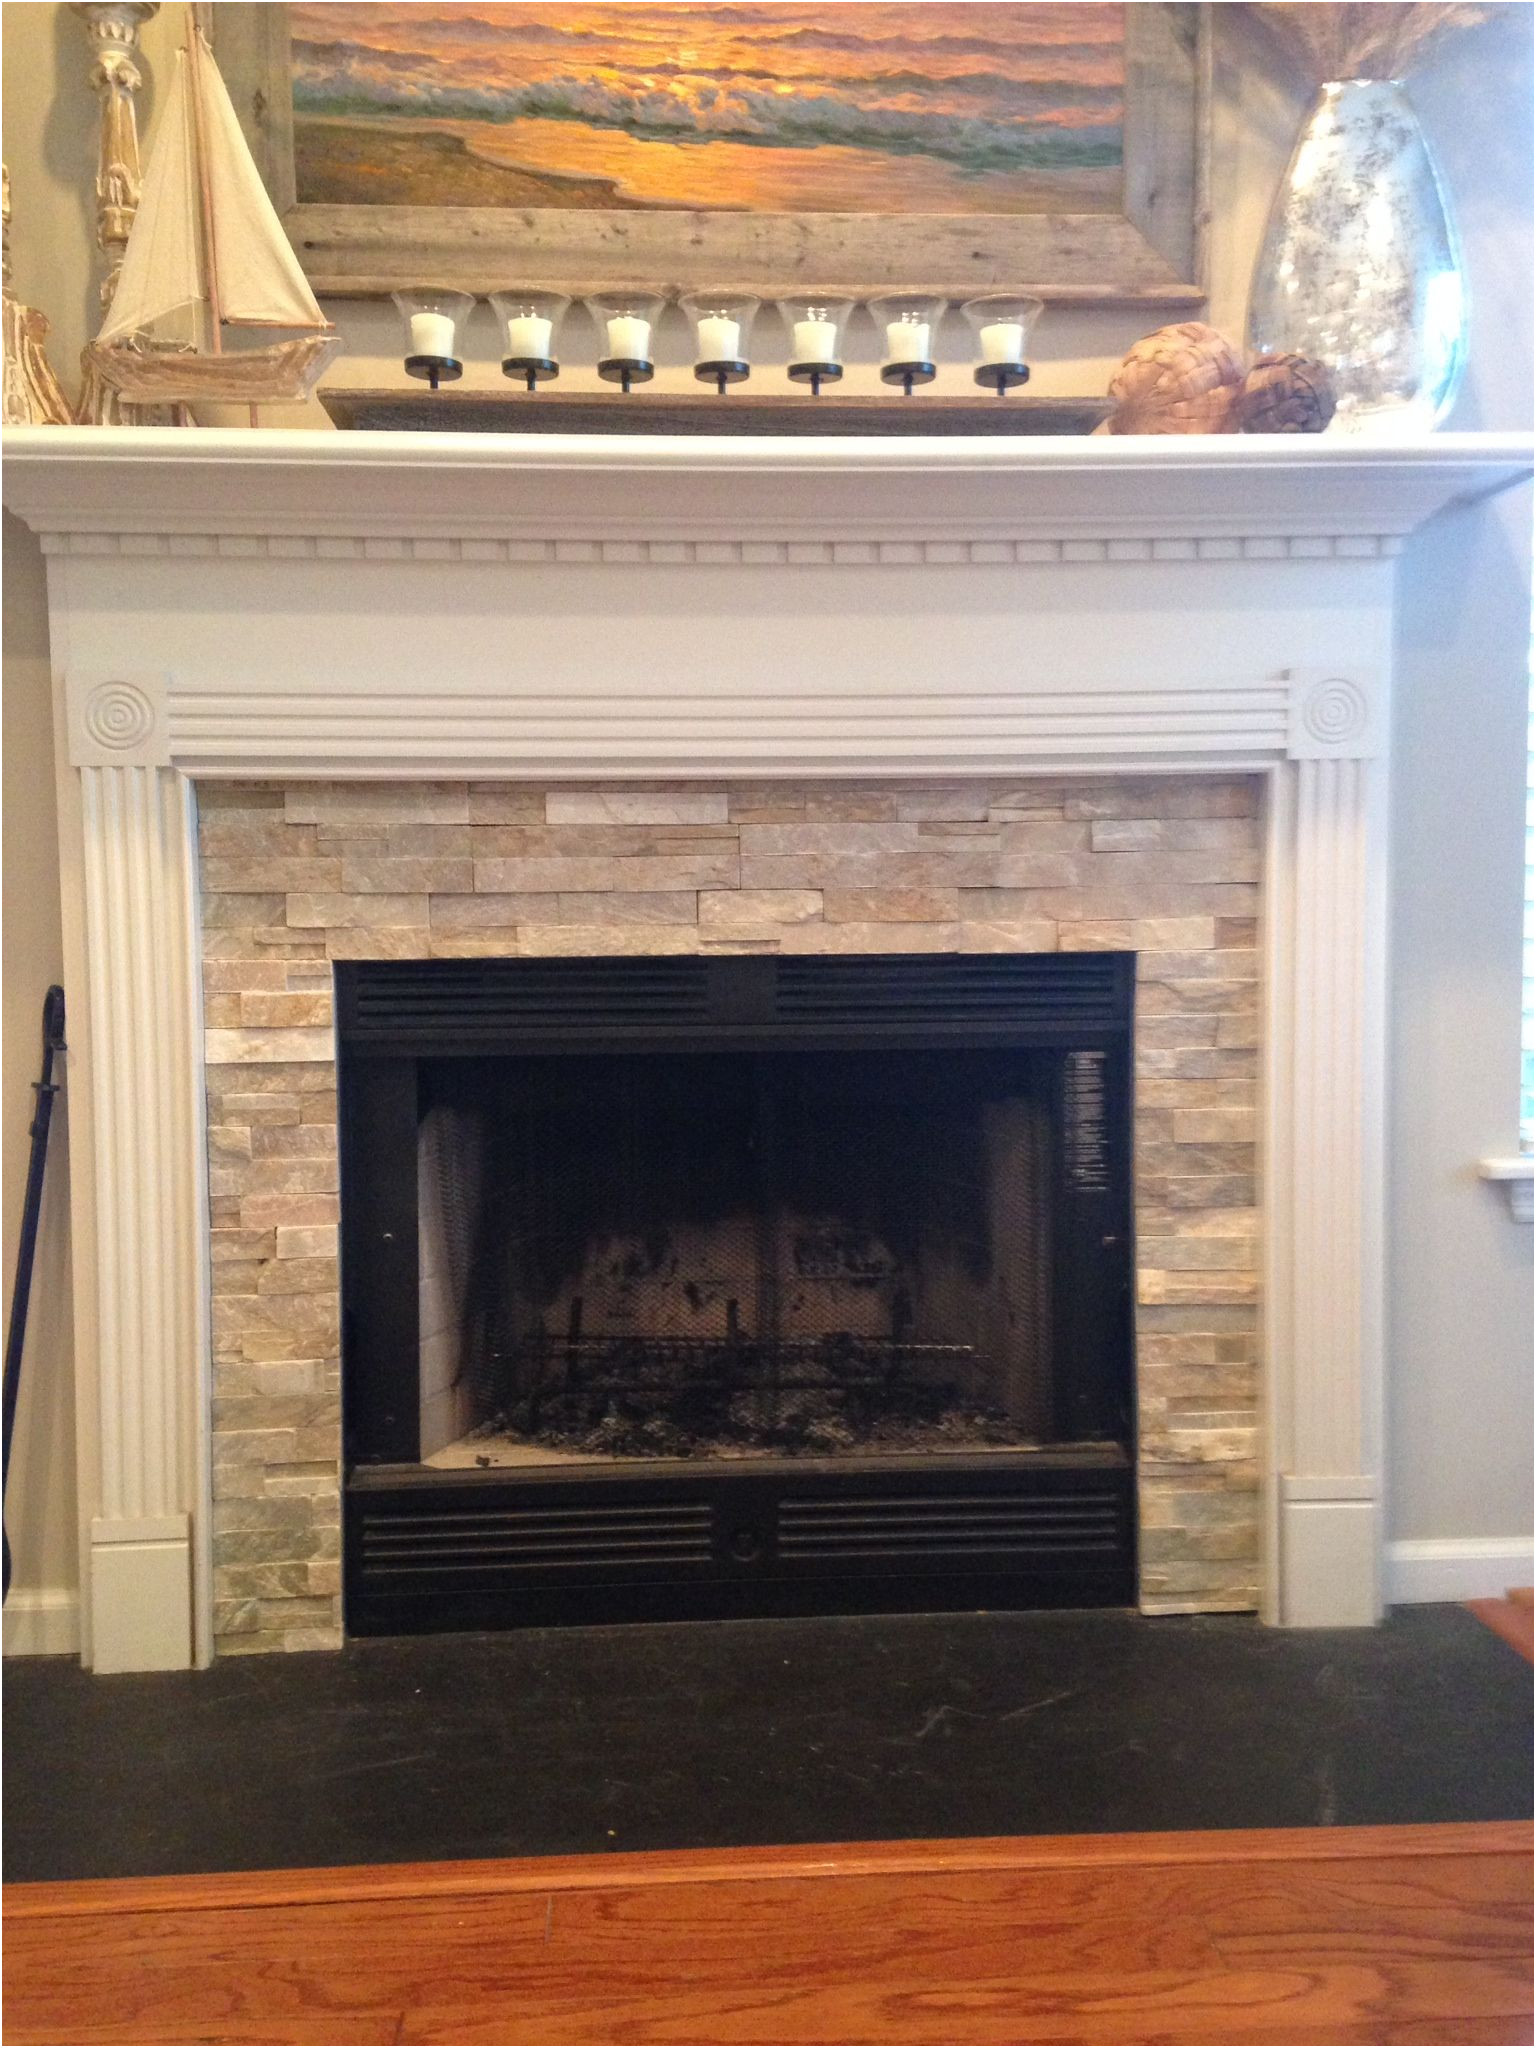 Ideas for Fireplace Remodel New Fireplace Idea Mantel Wainscoting Design Craftsman